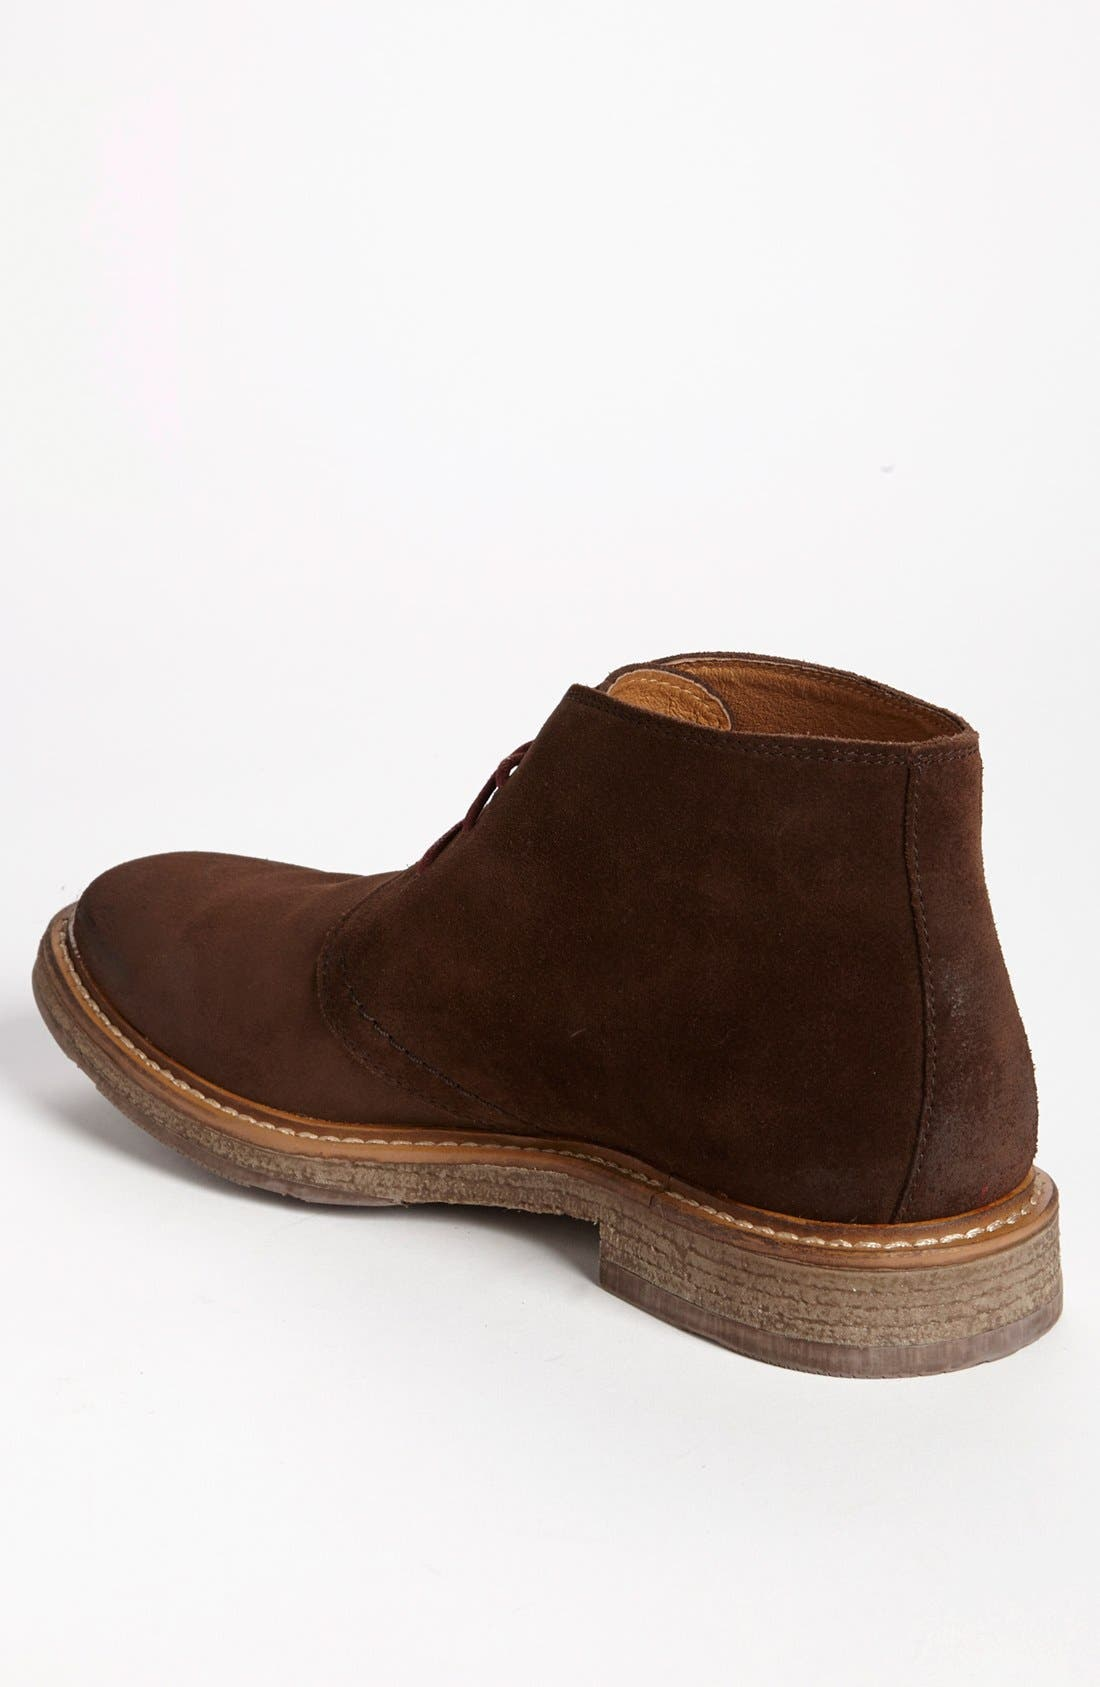 'Canyon' Chukka Boot,                             Alternate thumbnail 16, color,